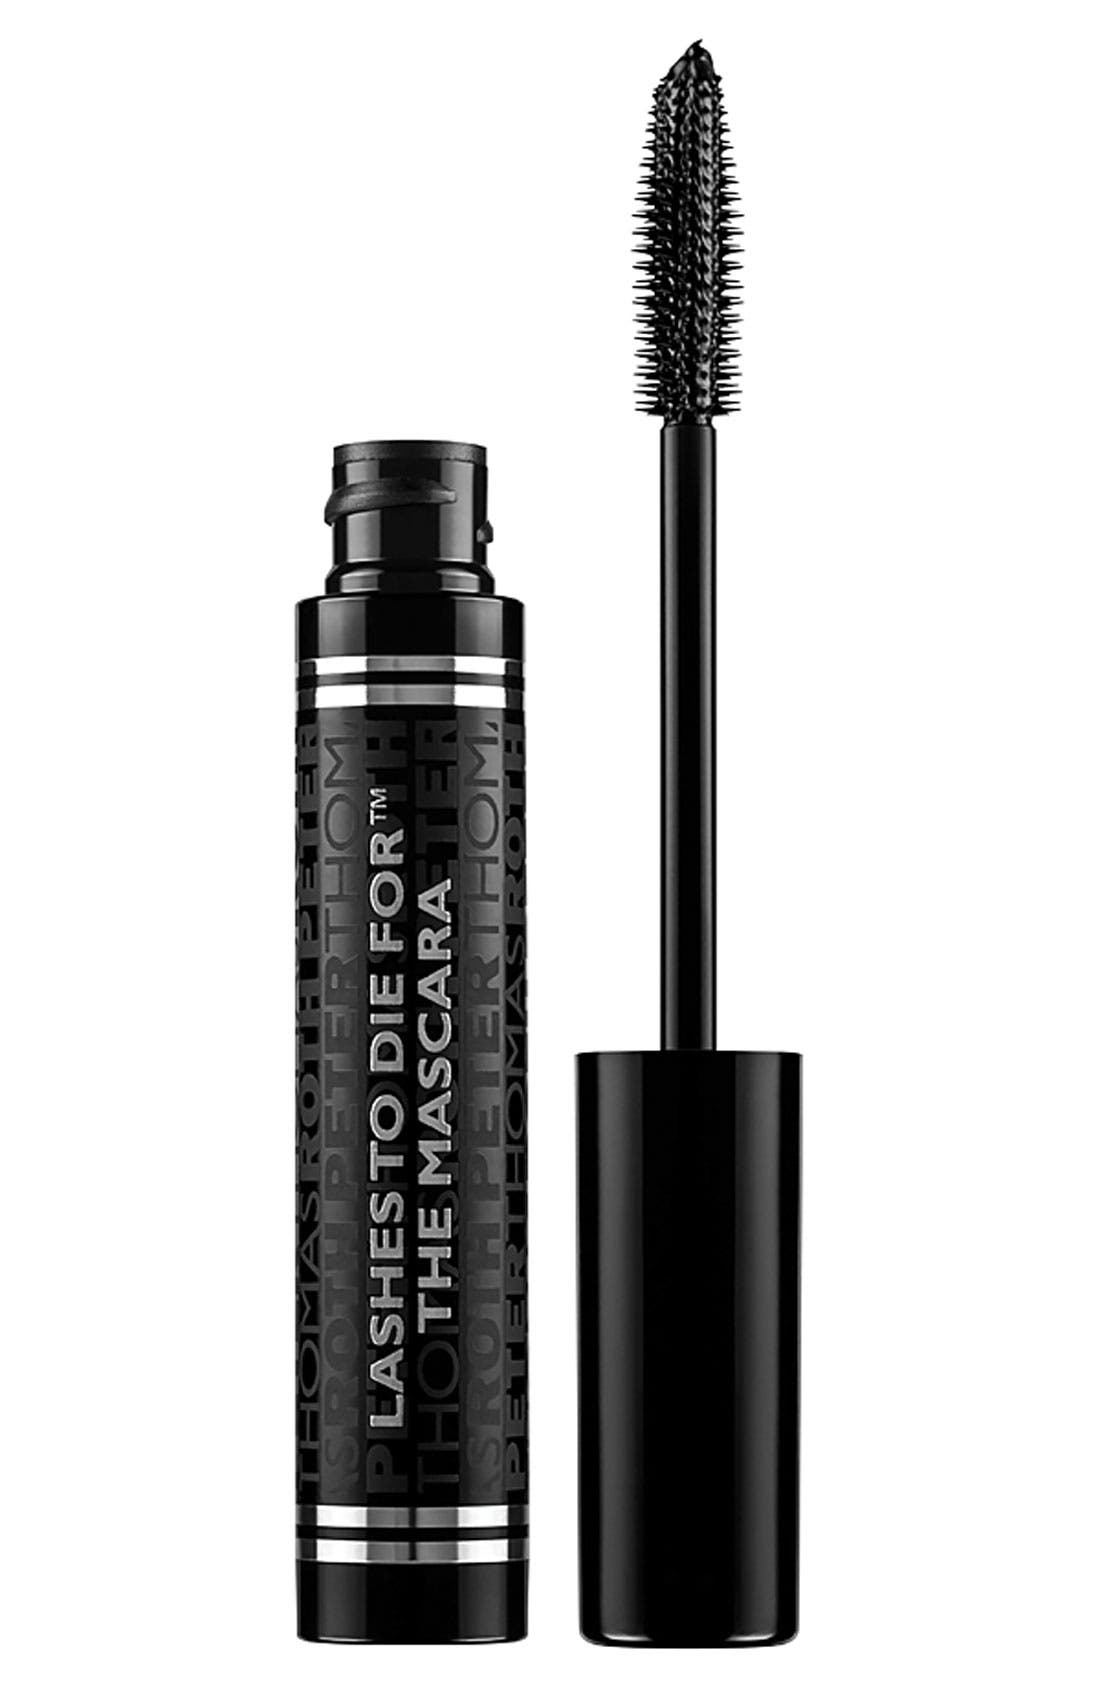 Lashes to Die For Mascara,                             Main thumbnail 1, color,                             NO COLOR